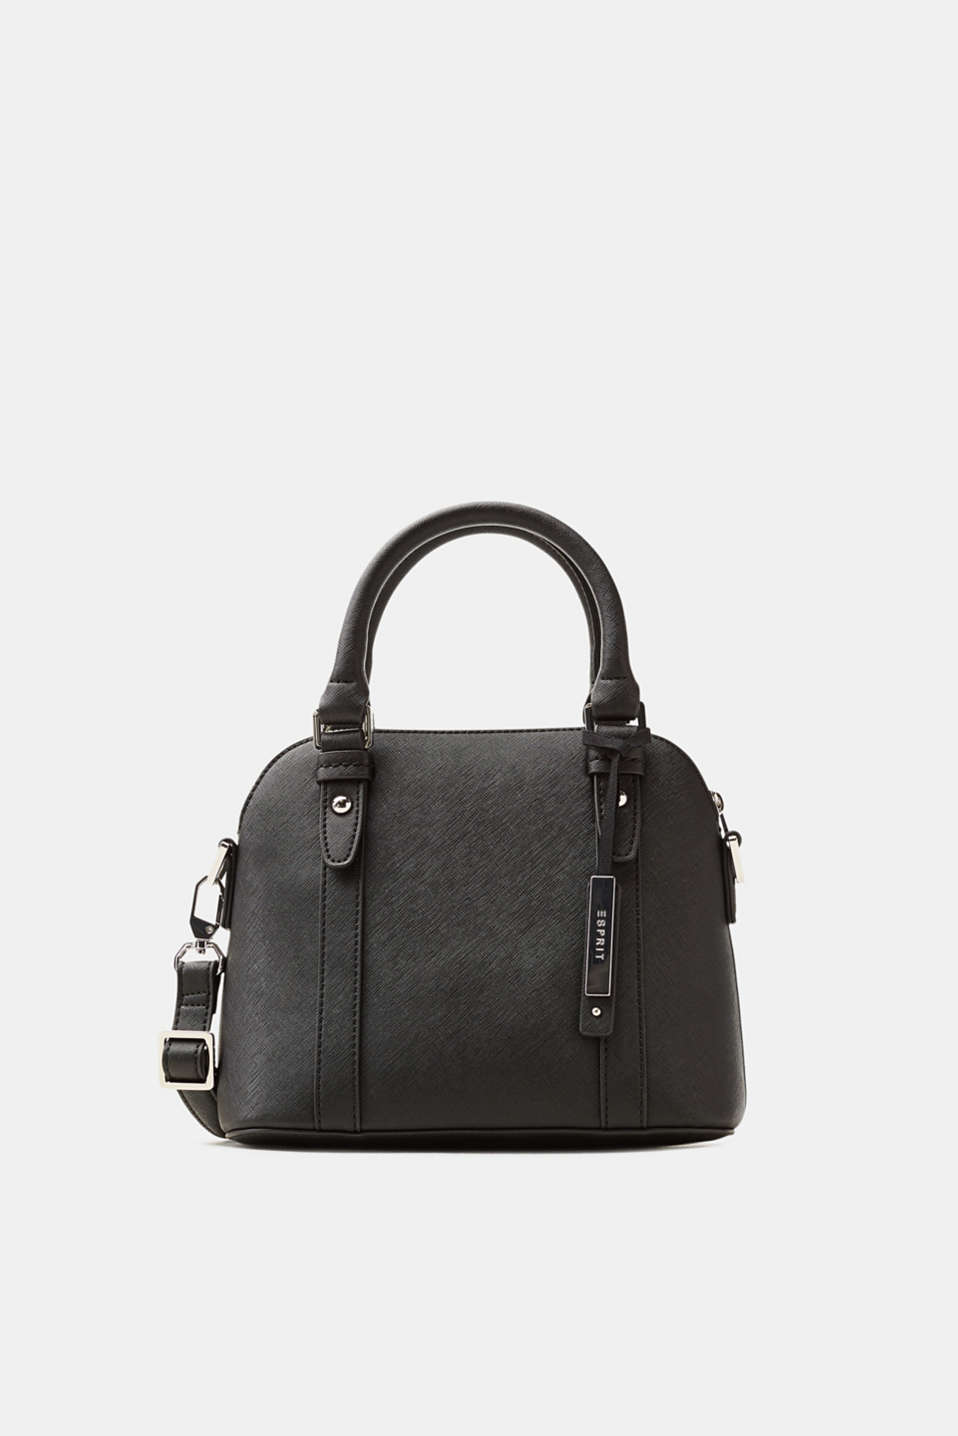 Esprit - Small handbag made of textured faux leather